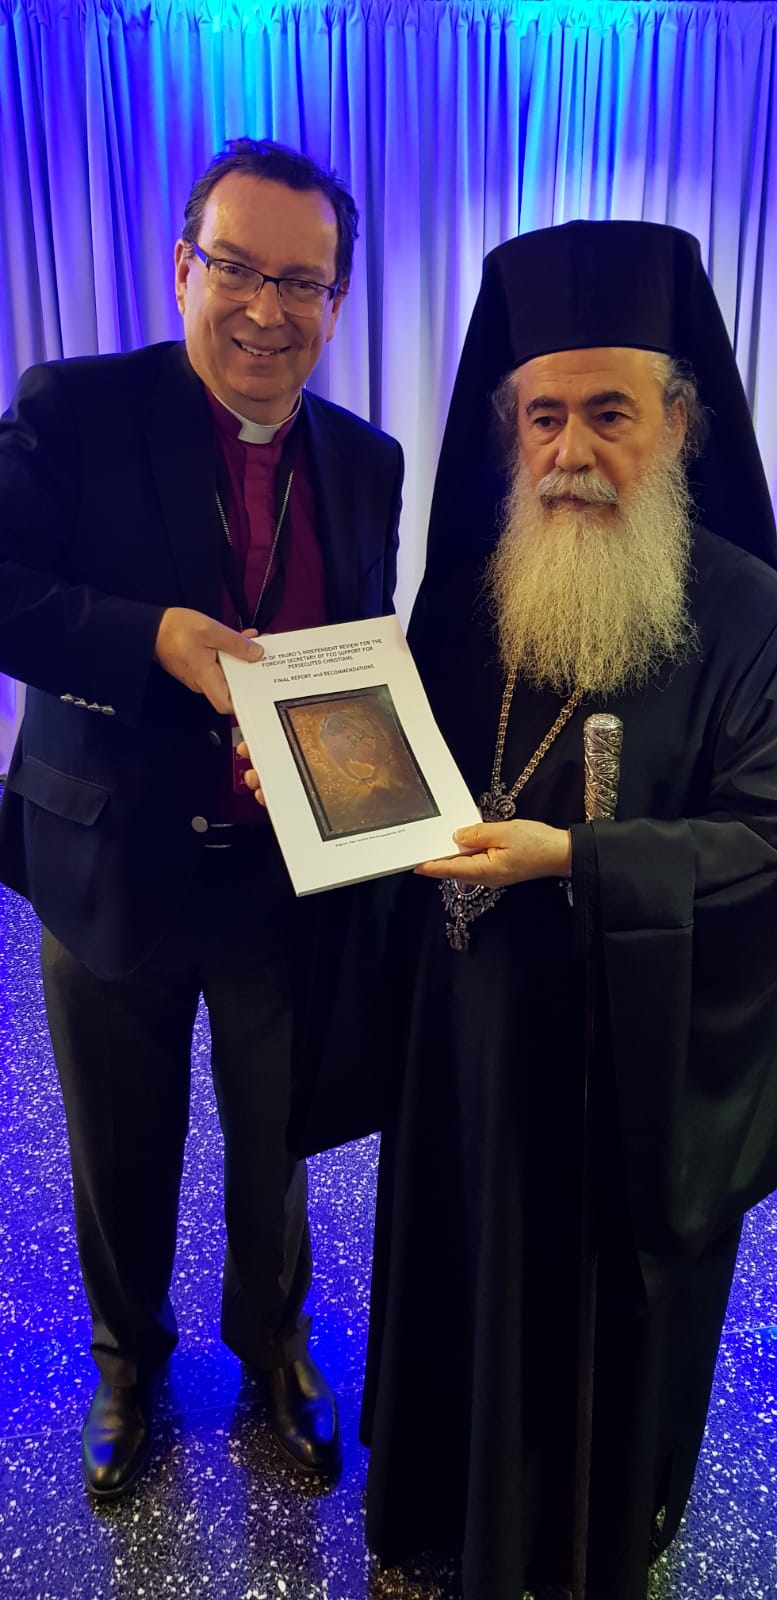 Bishop Philip Mounstephen with the Patriarch of Jerusalem.